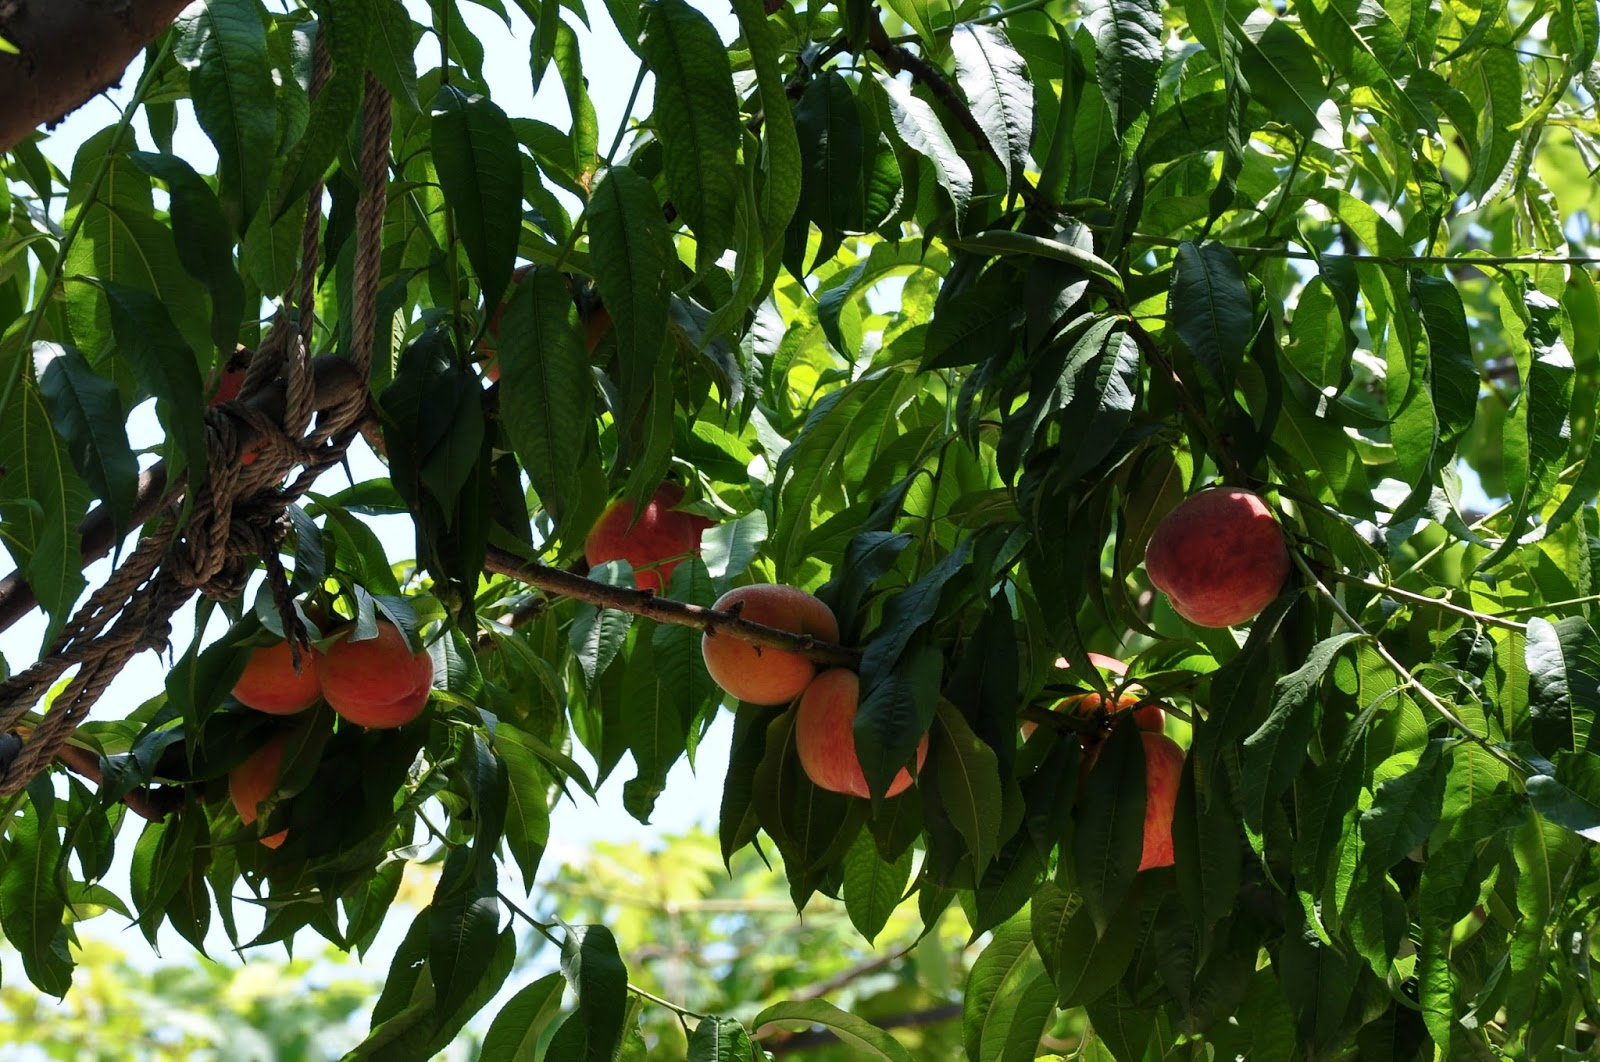 Peaches on branches